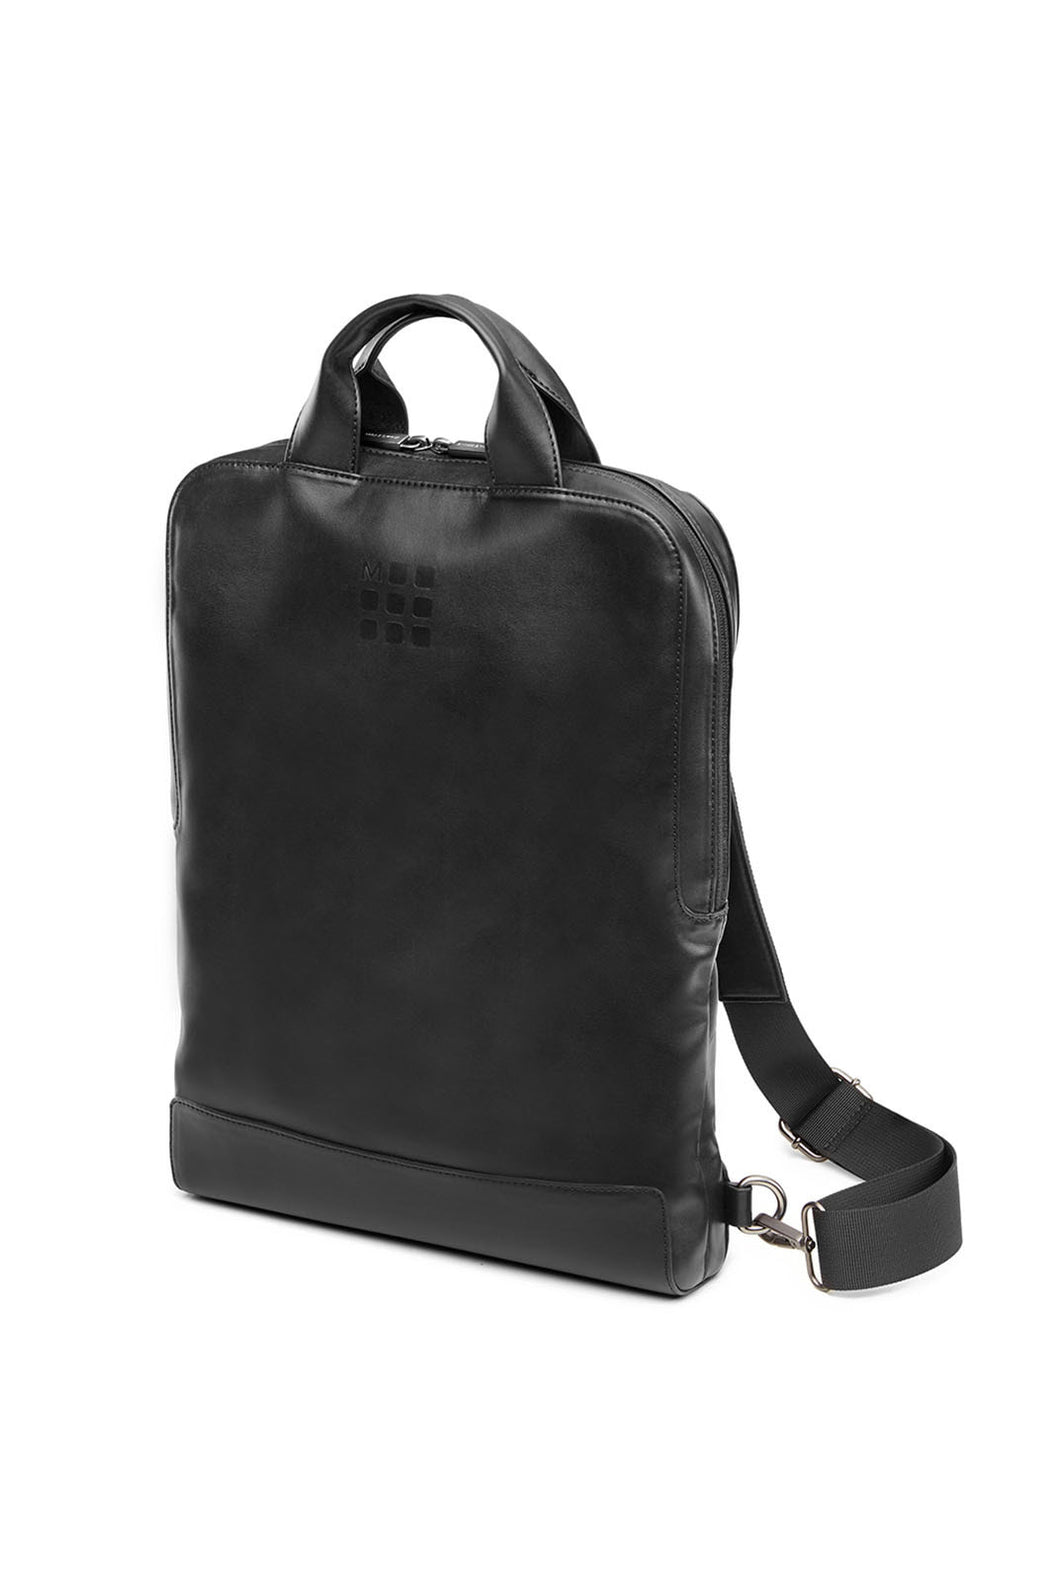 Moleskine - Classic Vertical Device Bag - 15